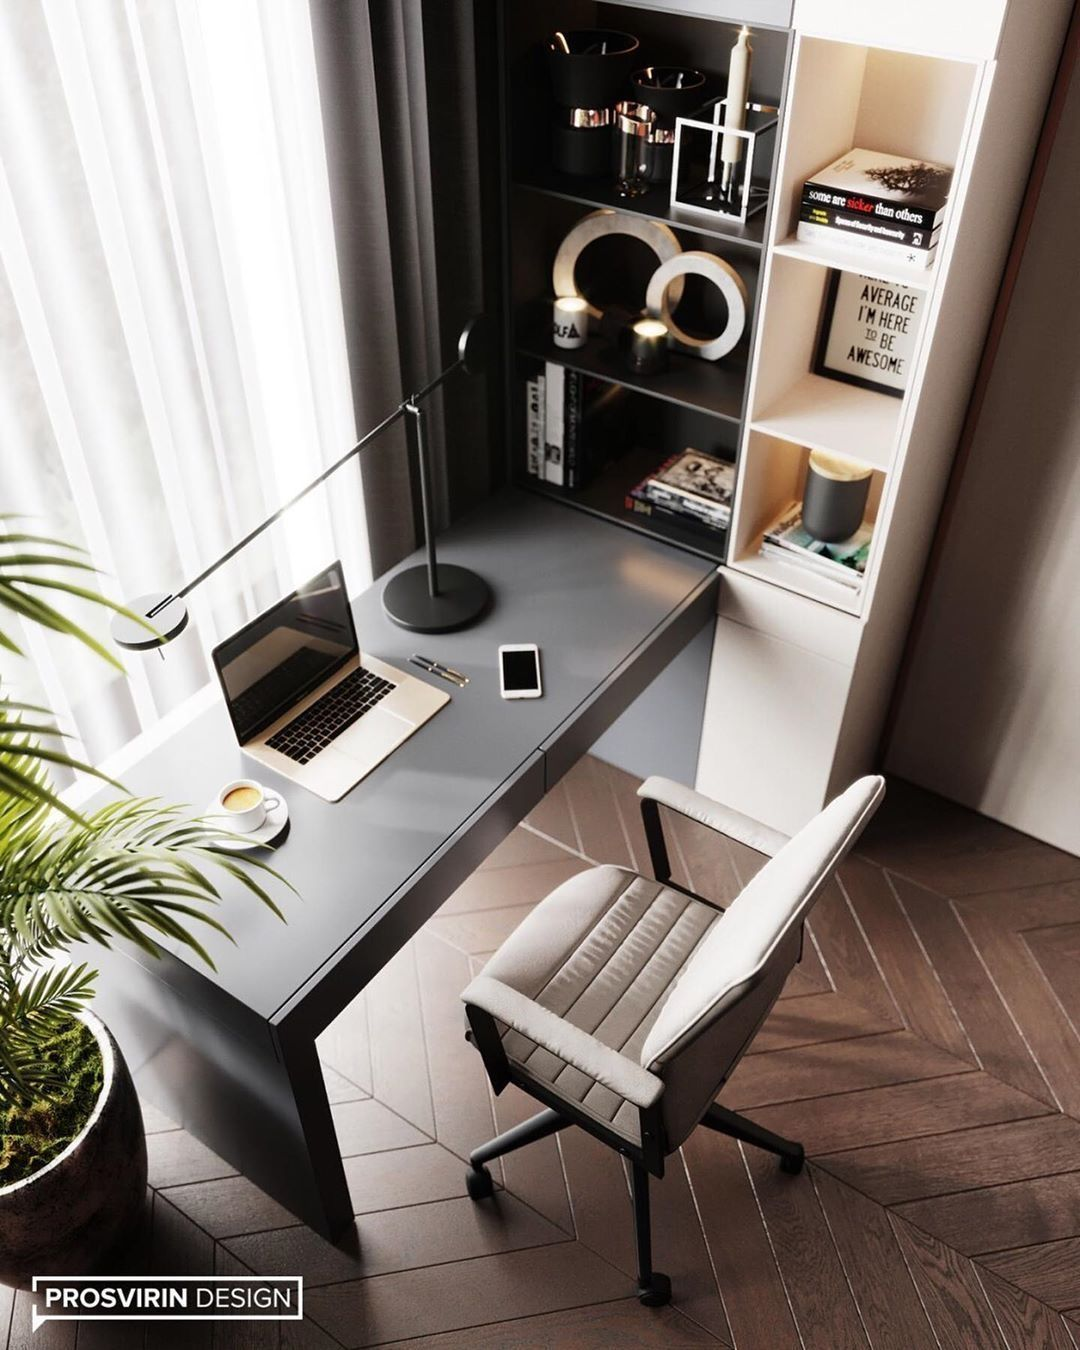 20 Marvelous Bedroom Cabinet Design Ideas For Your Home Inspiration Home Office Decor Office Interior Design Modern Office Interiors